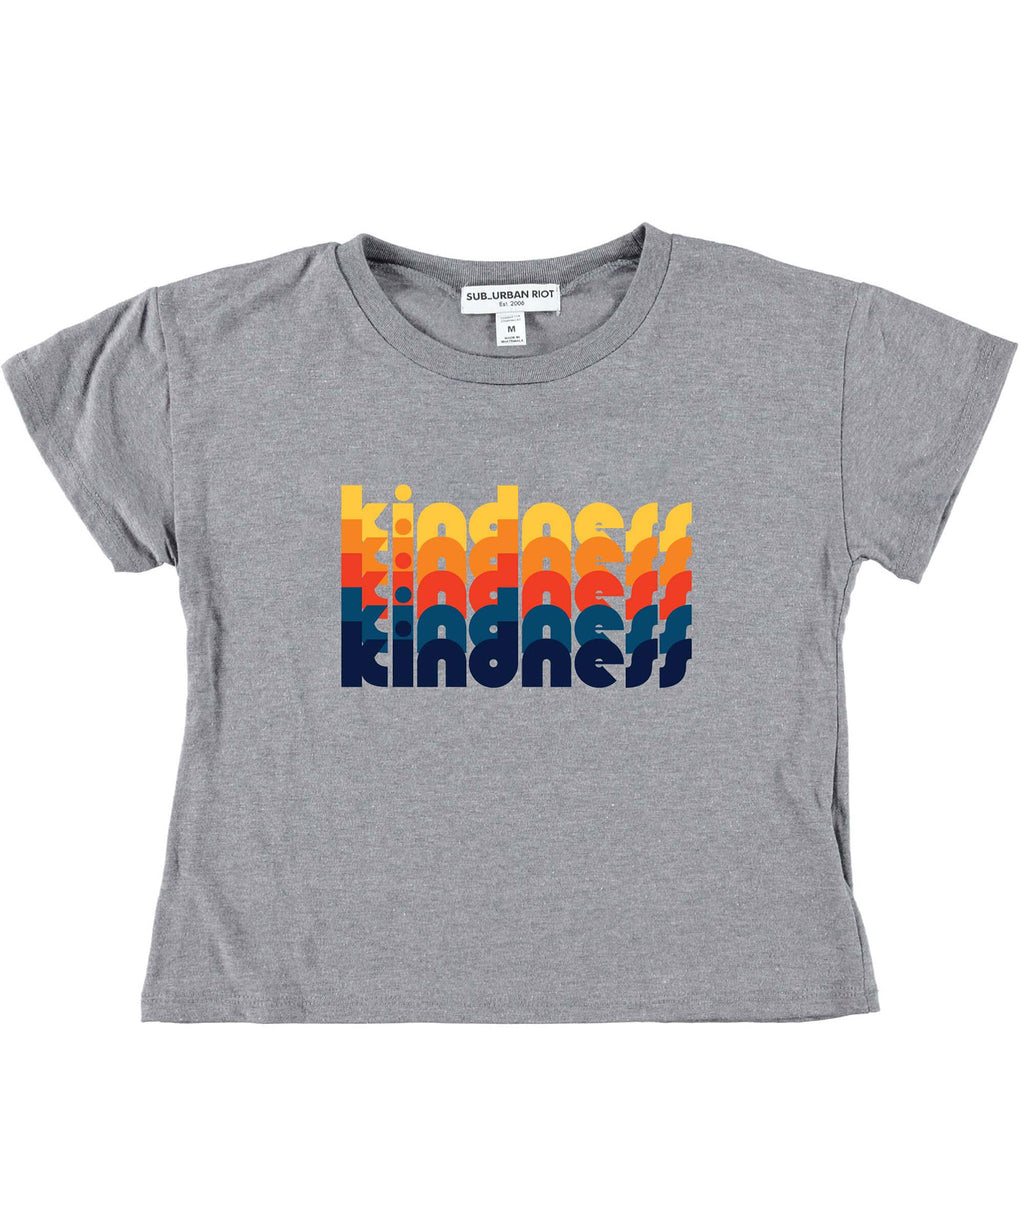 Sub_Urban Riot Girls Heather Grey Kindness Stack Tee